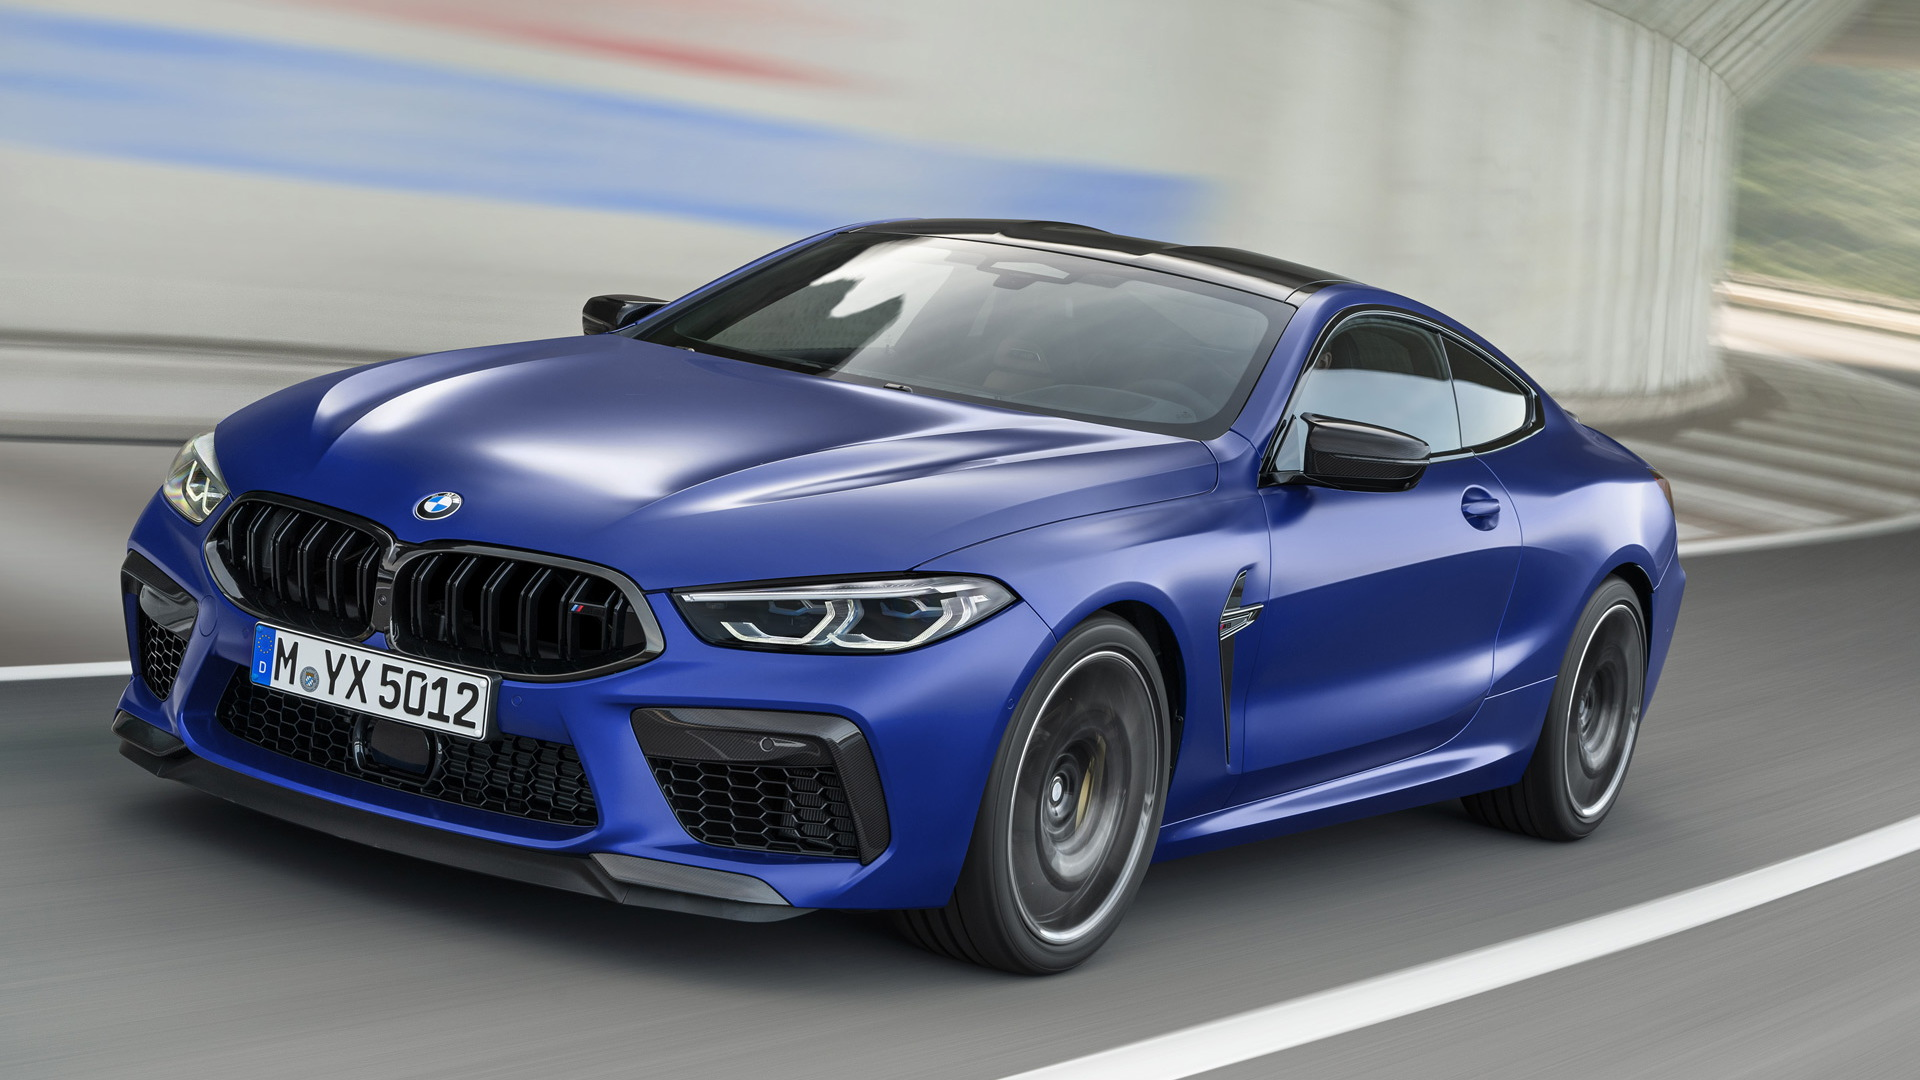 This engine is rated at 441 kw (591 hp) at 6,000 rpm and 750 n⋅m (553 lb⋅ft) in the standard m8 model, with peak power increasing to 460 kw (617 hp) at 6,000. Bmw M Chief Says M8 Will Be Fastest Bmw Ever Around The Nurburgring